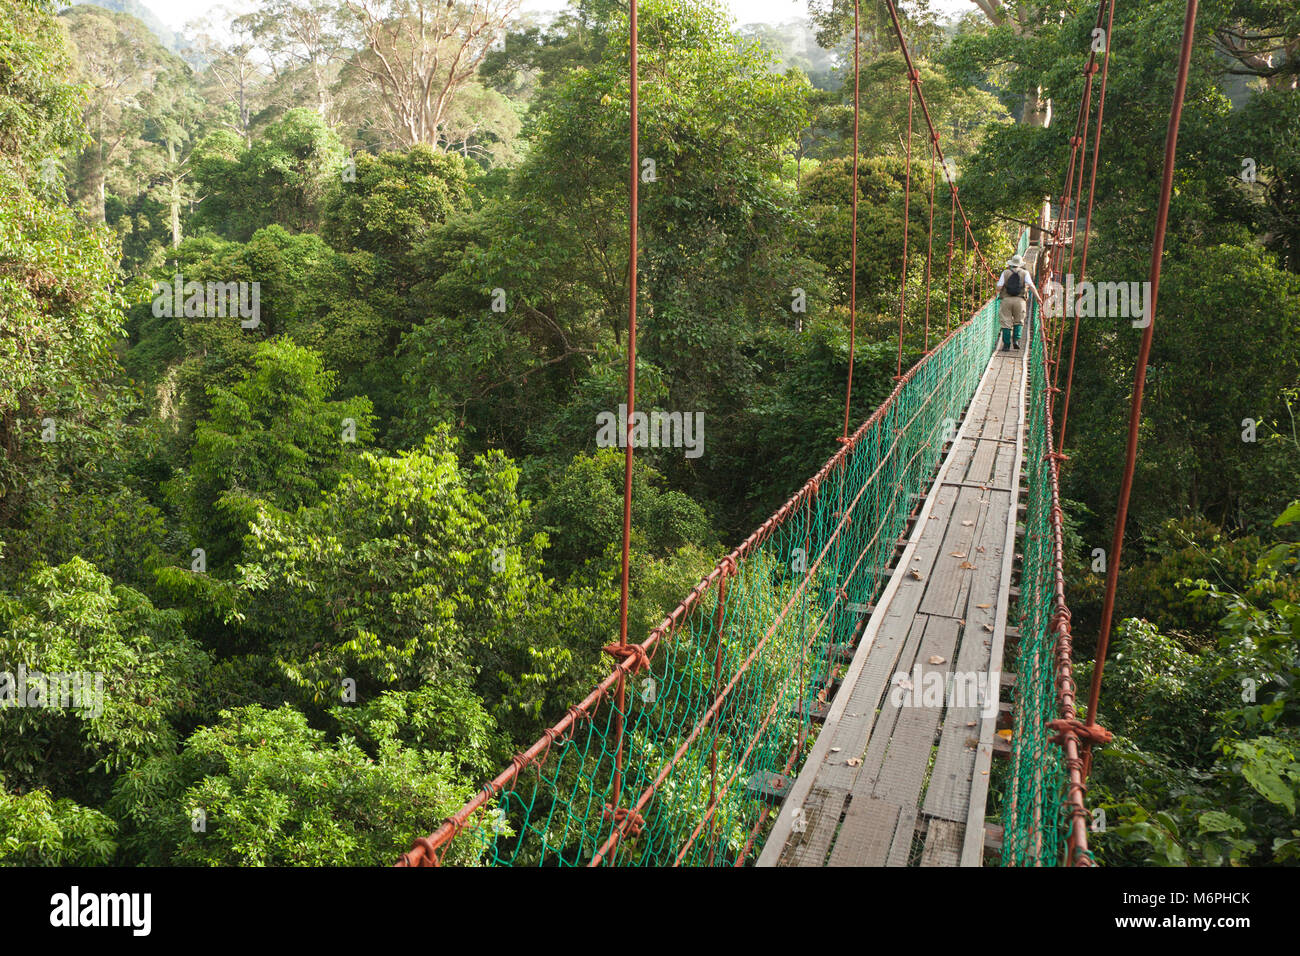 Ecotourist on canopy walkway in tropical lowland rainforest at the Borneo Rainforest Lodge - Stock Image & Rainforest Canopy Walkway Borneo Stock Photos u0026 Rainforest Canopy ...